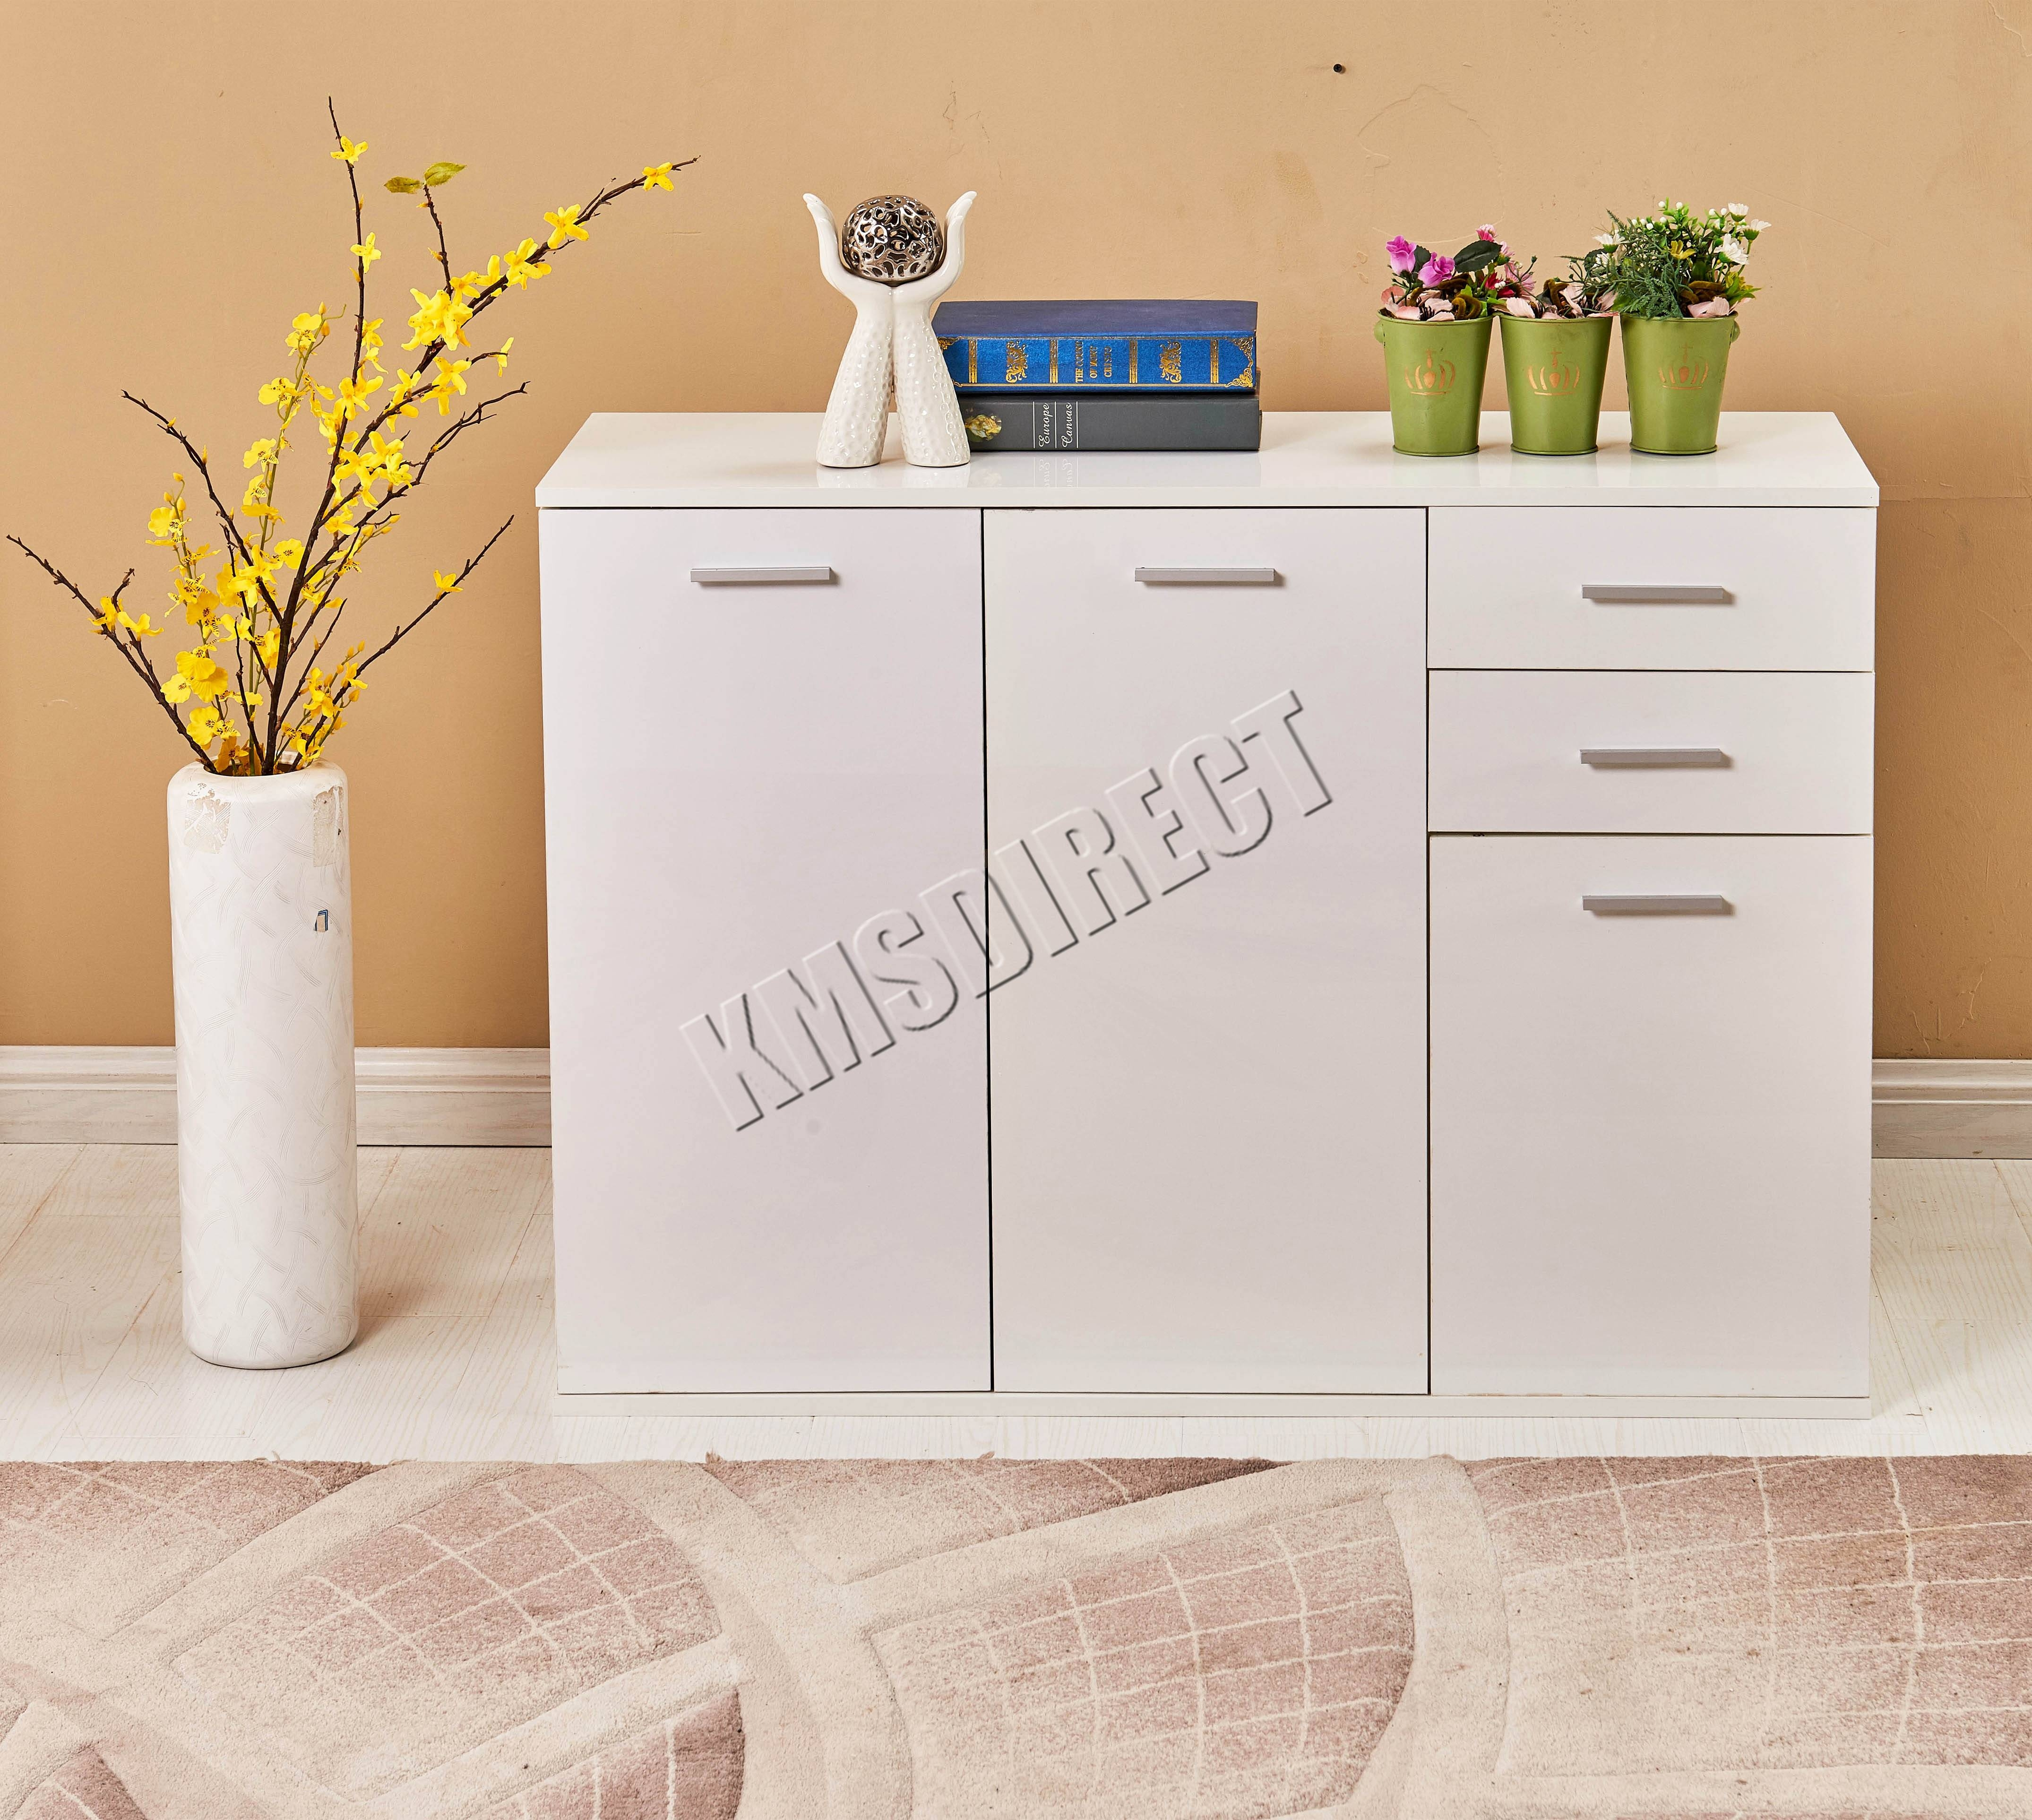 Foxhunter White High Gloss Cabinet Unit Sideboard 2 Drawers 2/3 Regarding White High Gloss Sideboard (View 9 of 20)